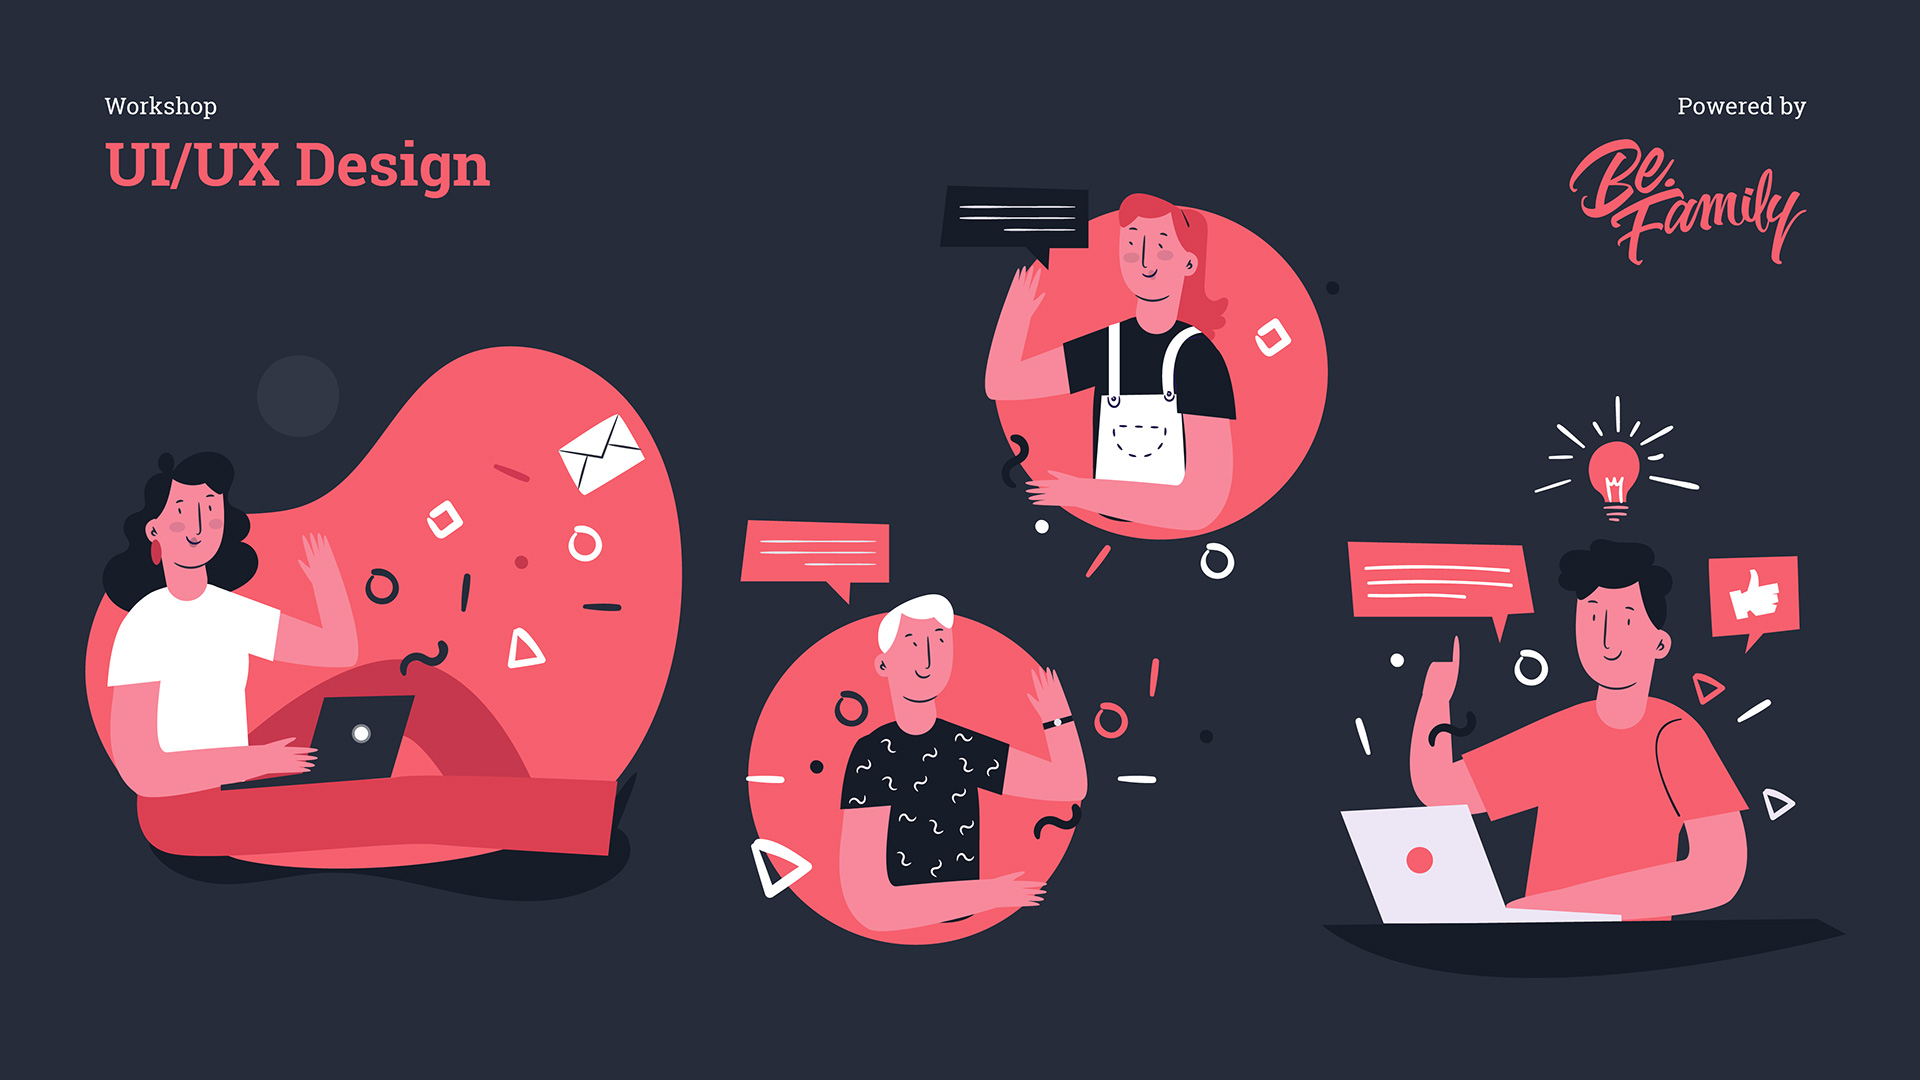 UI/UX: Design Thinking workshop